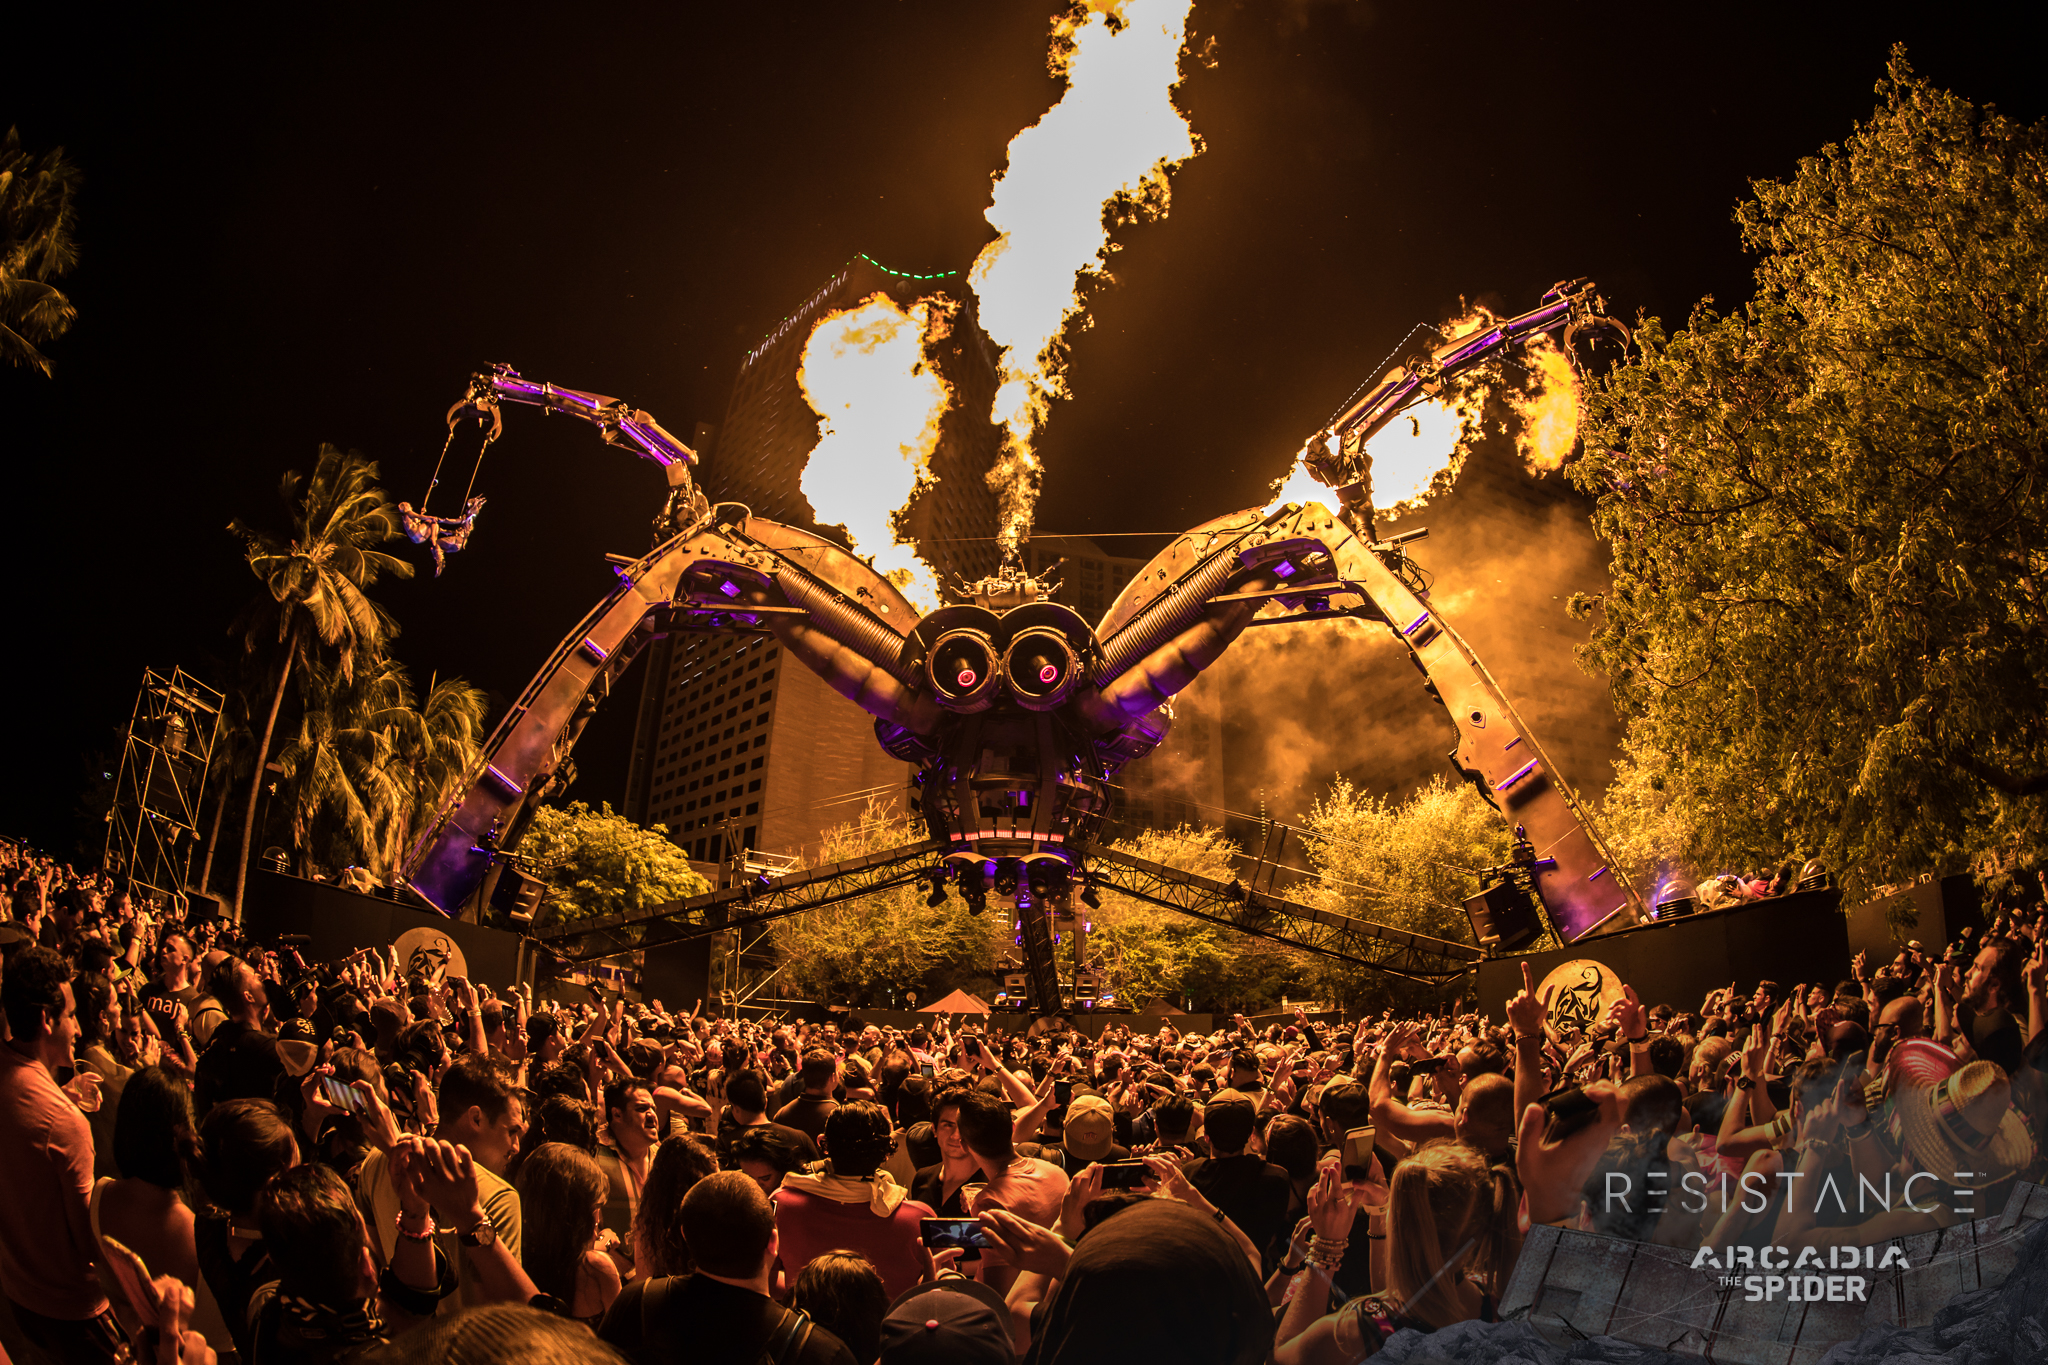 watch the resistance arcadia spider live stream from ultra music